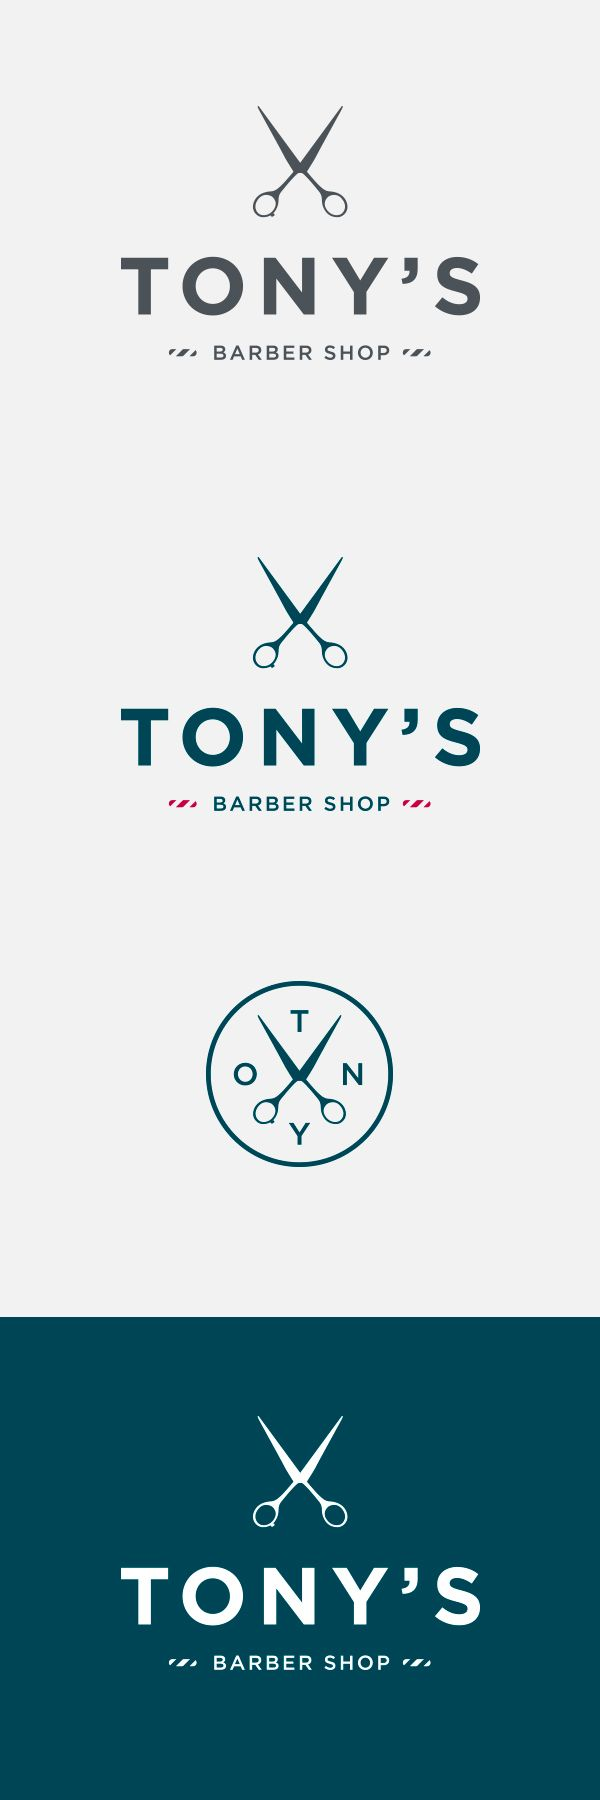 barber shop logo, branding